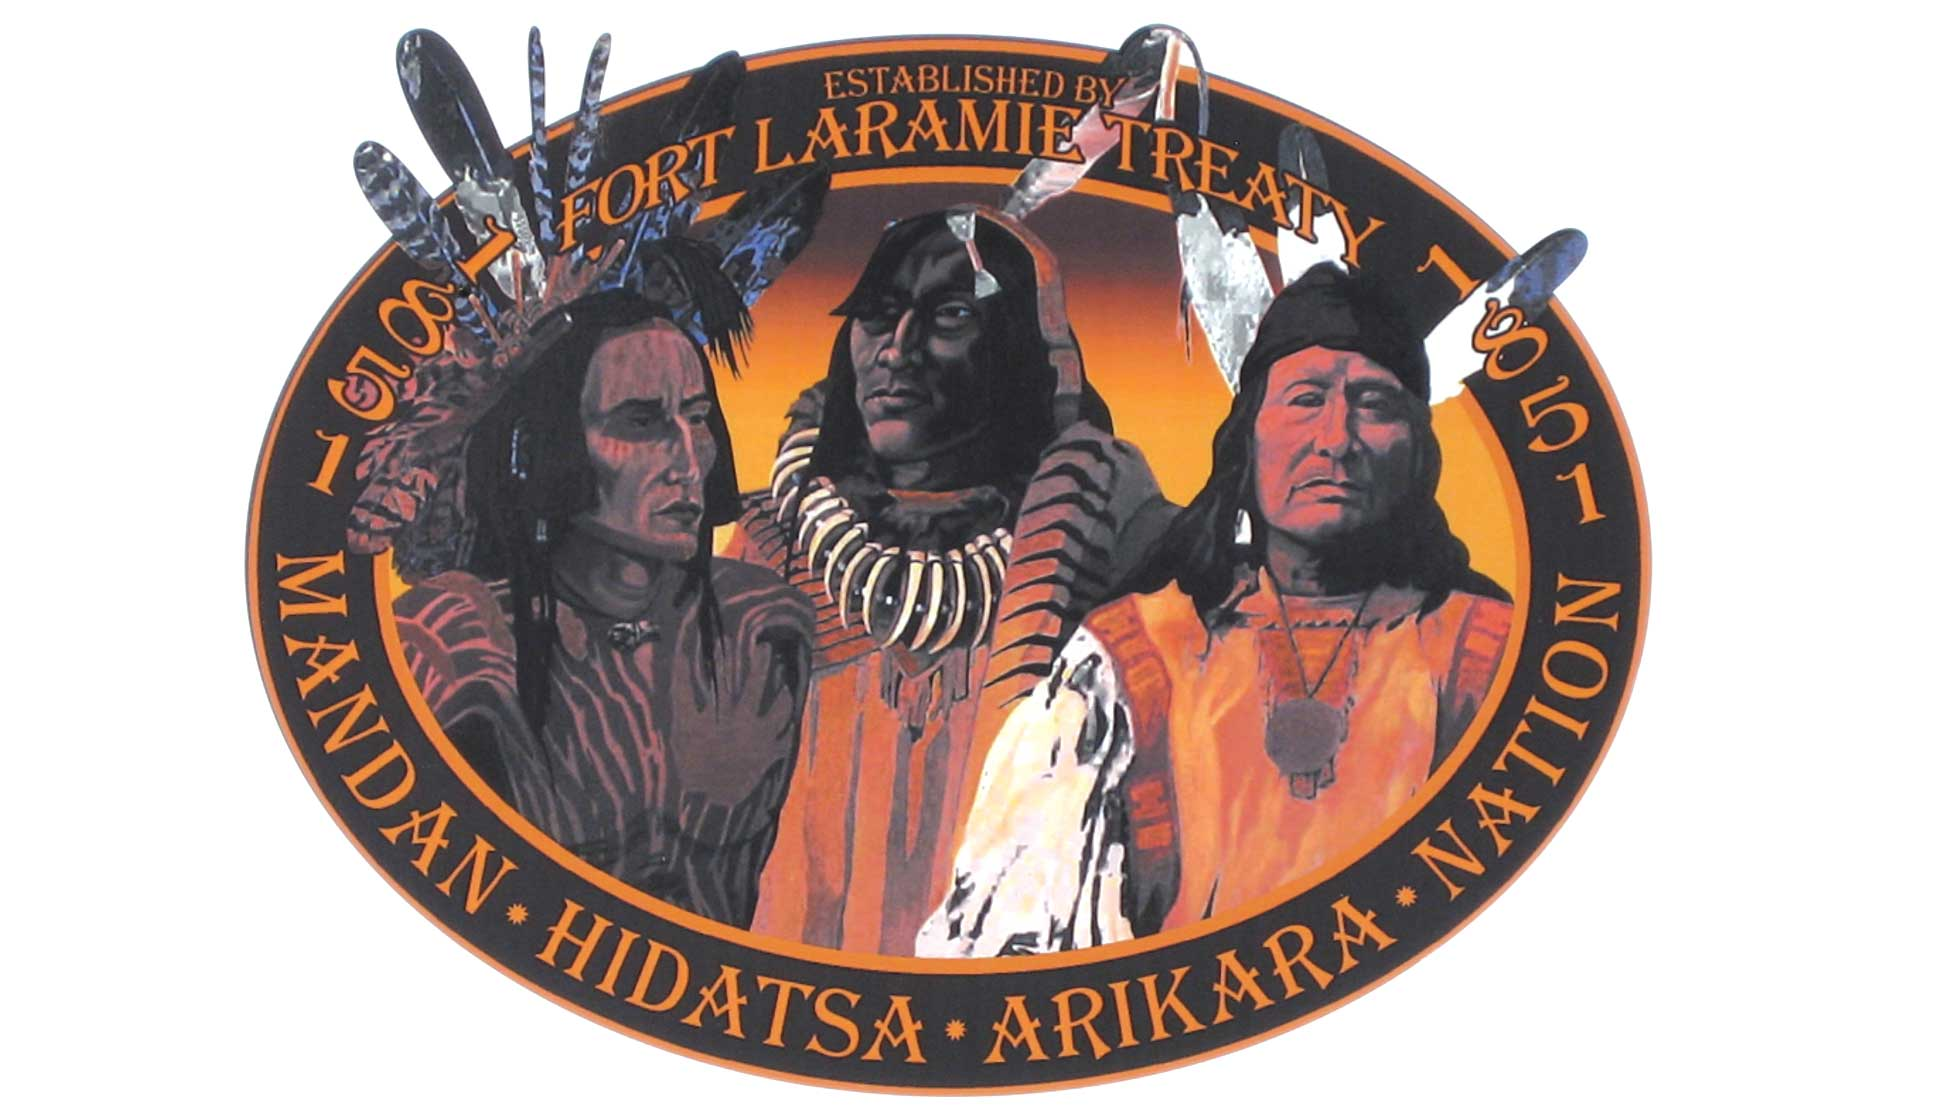 This attractive logo represents the Three Affiliated Tribes.